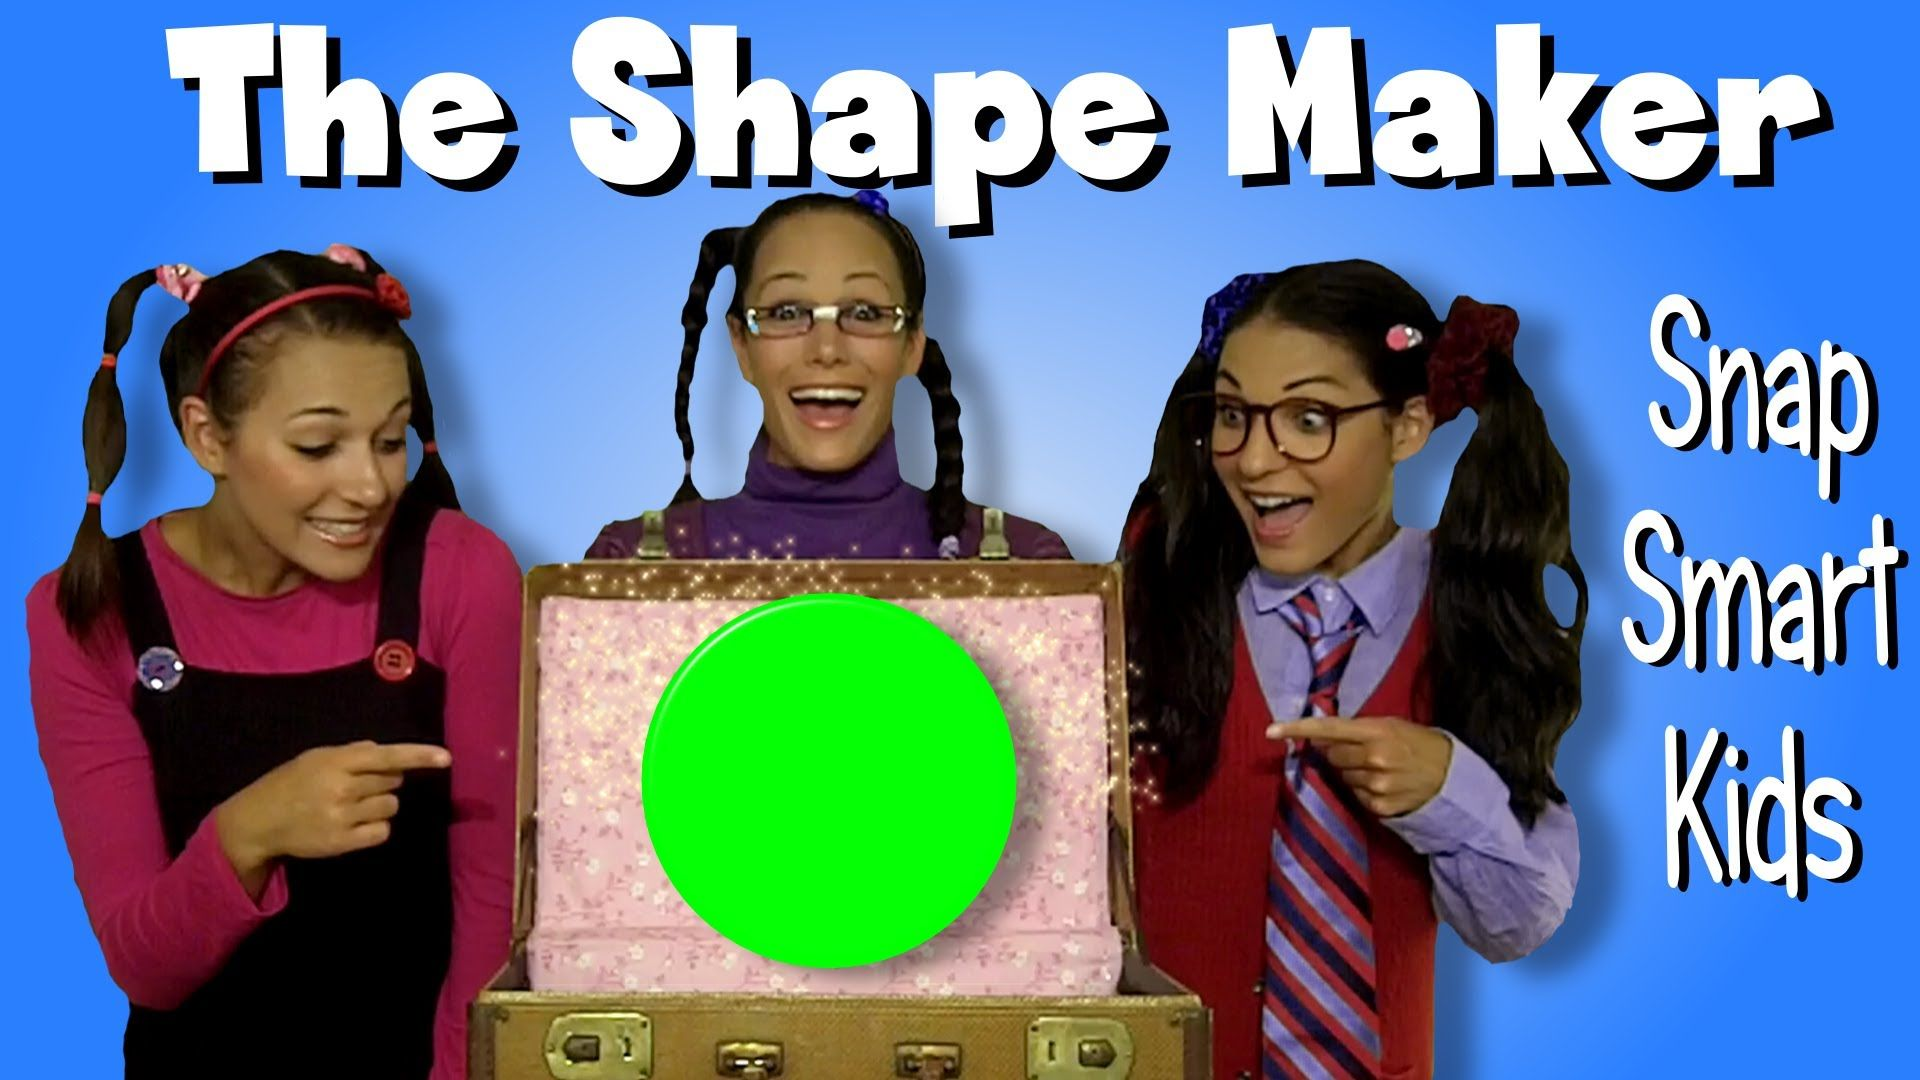 The Shape Maker Full Version By Snap Smart Kids Shapes